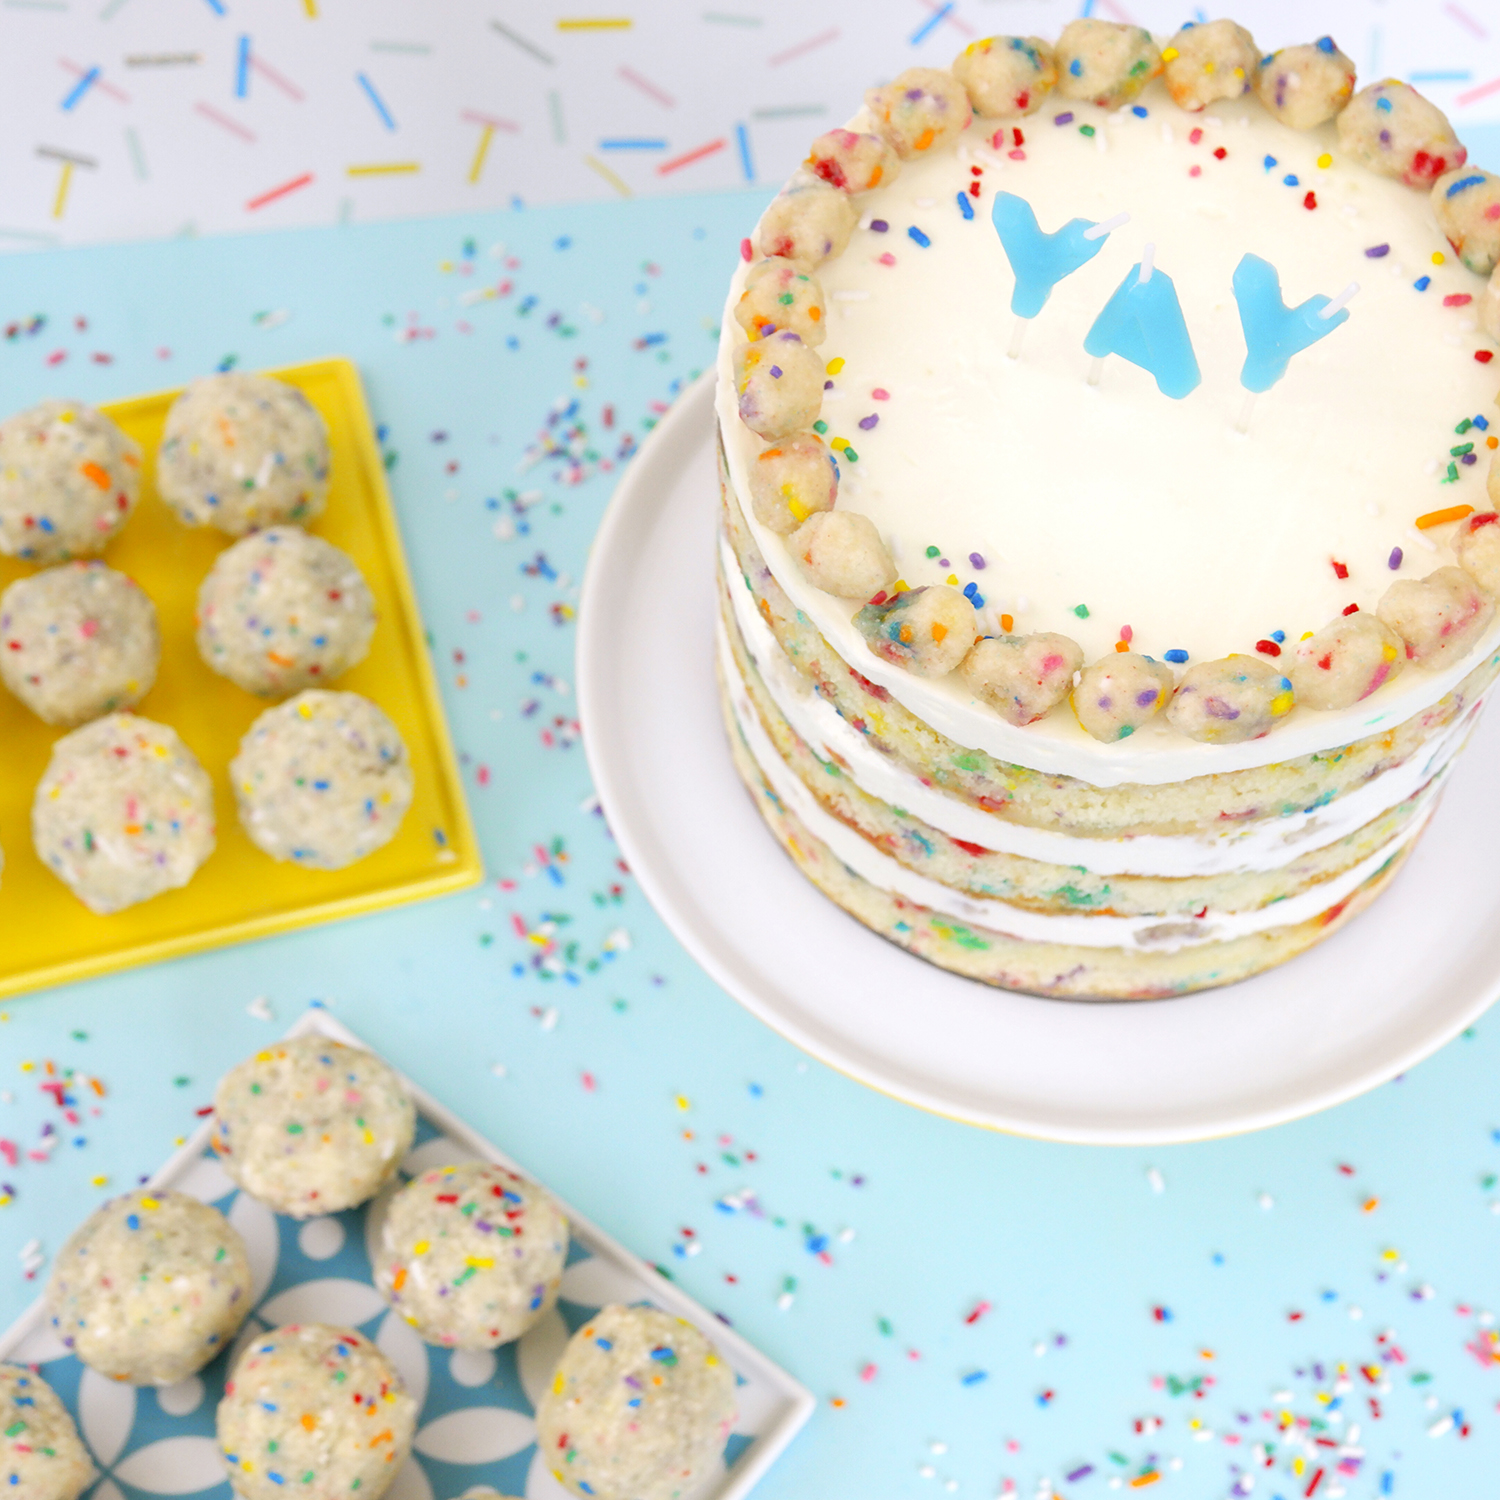 milk bar birthday cake with yay candles and sprinkles